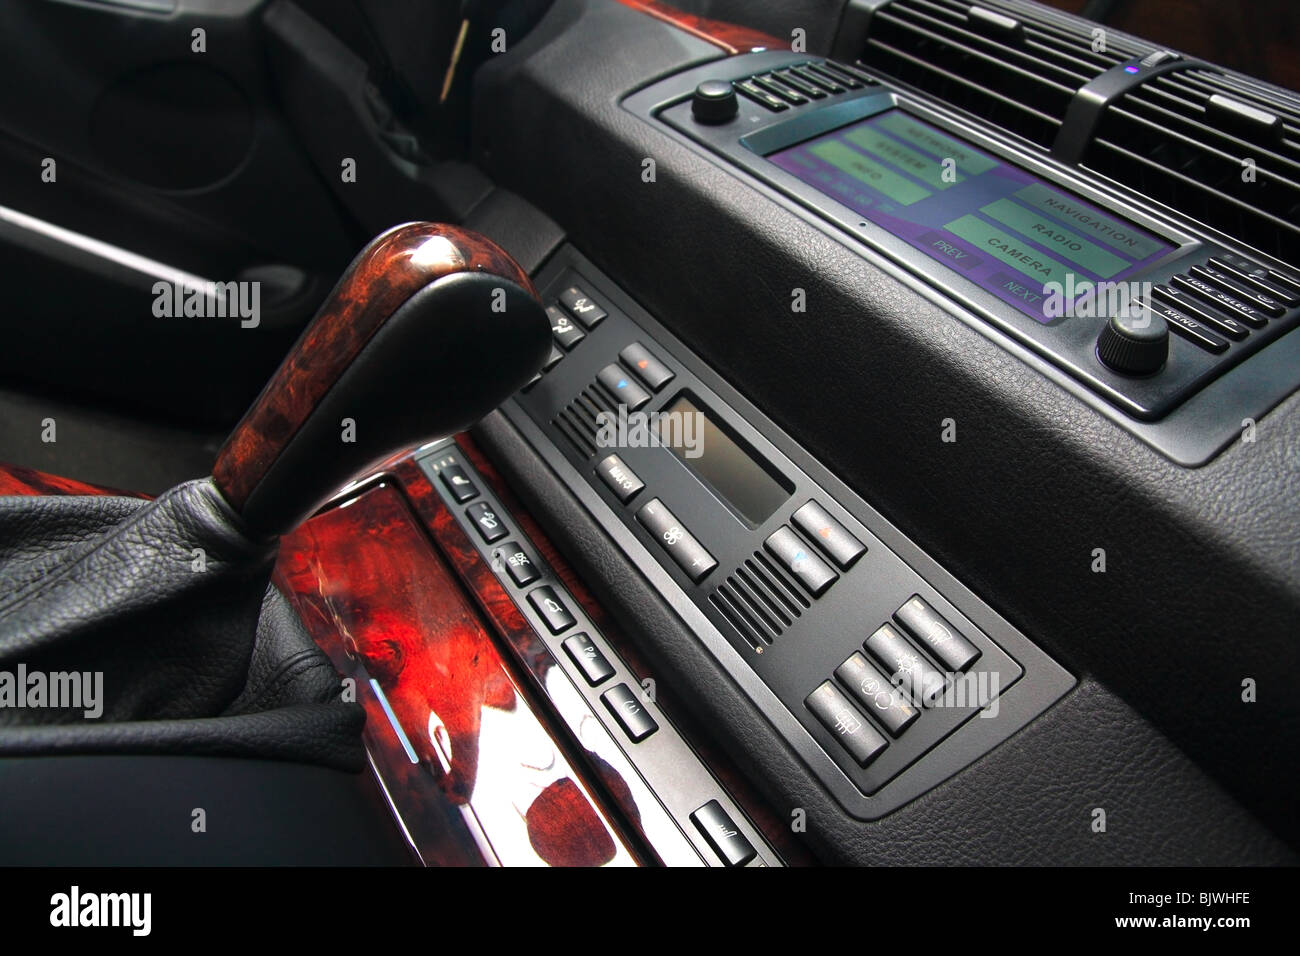 Modern luxury cars dashboard, with control buttons and multifunctional display. Shallow DOF. - Stock Image